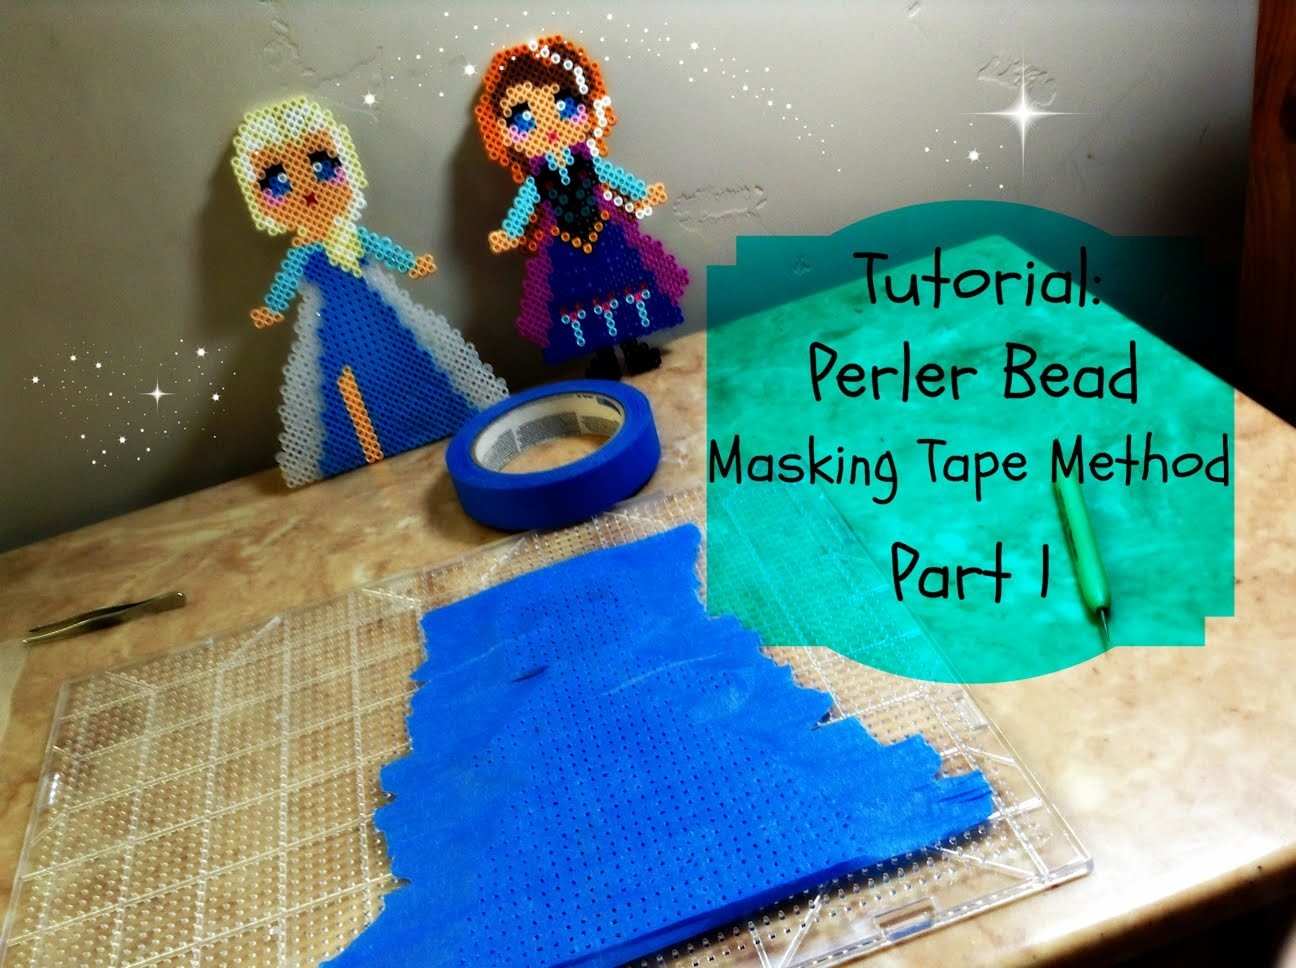 Tutorial: How to use the masking tape Perler bead method - part 1.5